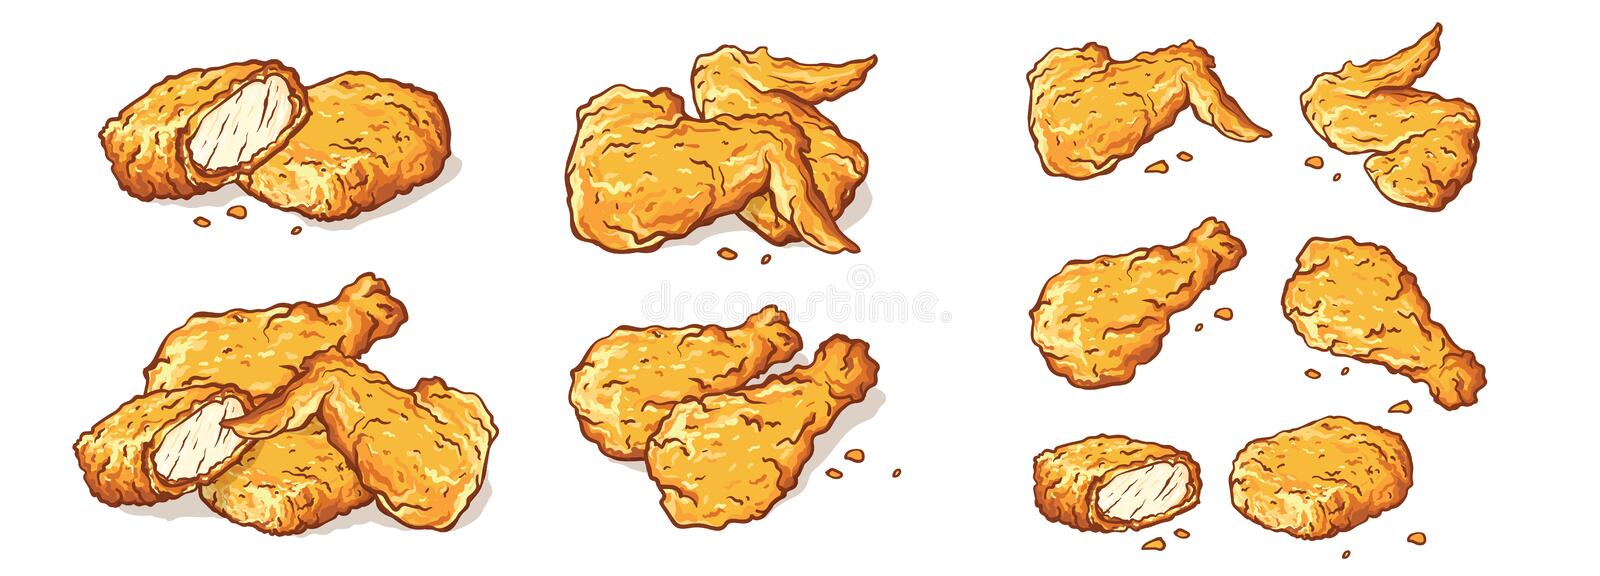 Leg wings and nuggets Fried Chicken Isolated Set stock illustration